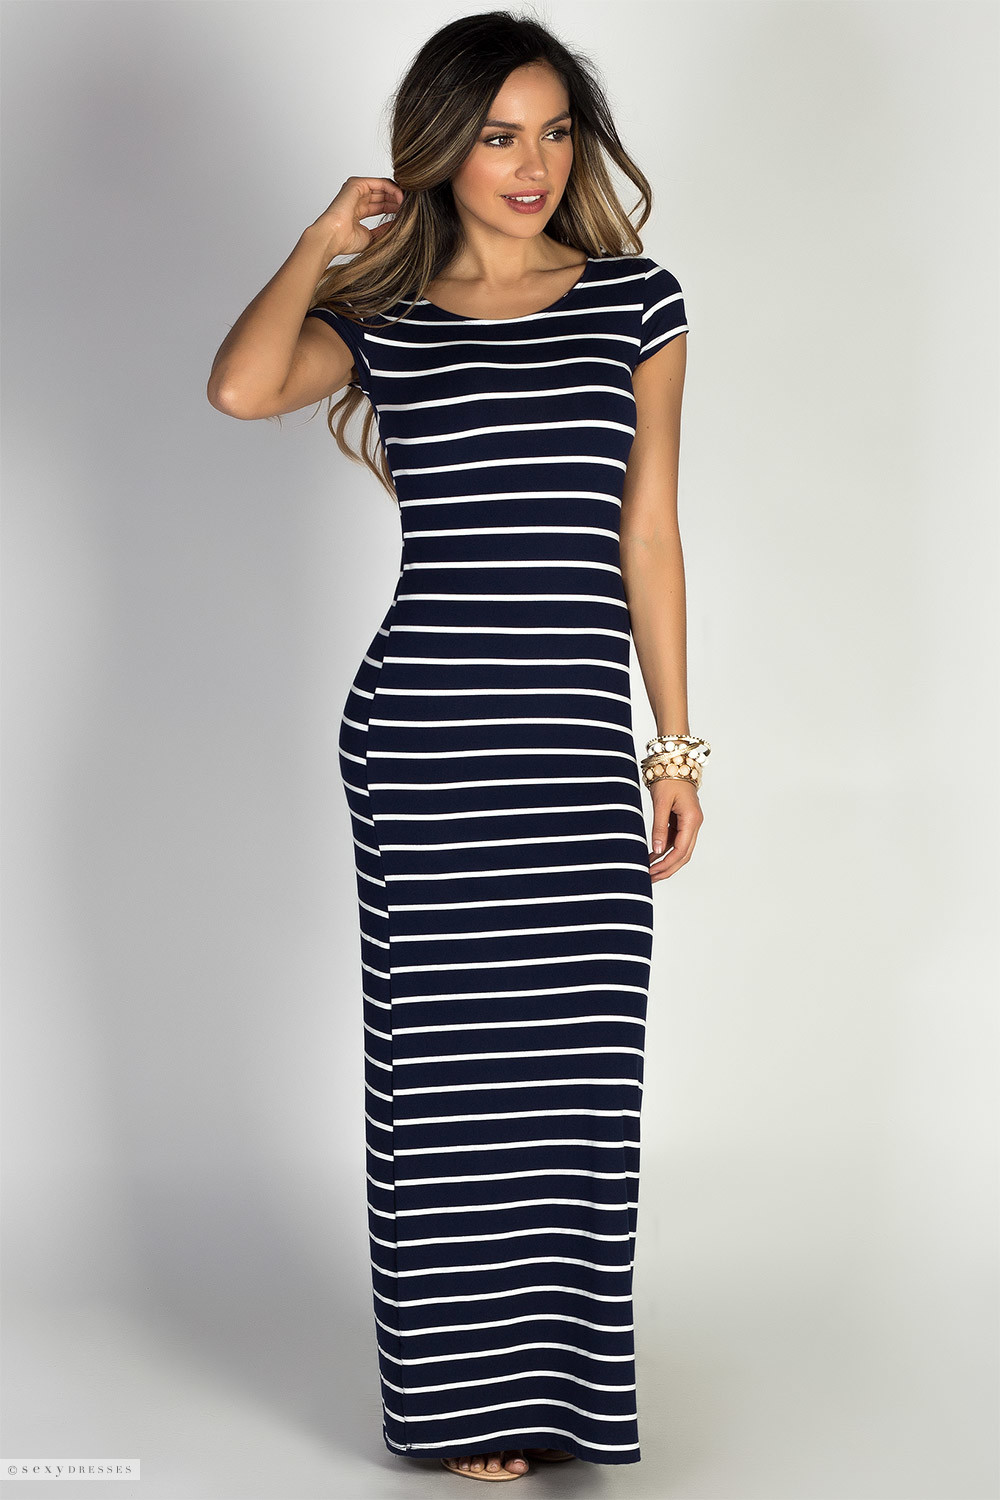 Shop women's long sleeve maxi dresses or bare some skin in short sleeve, halter, strapless and backless styles. Go classic with a white or black maxi dress, or stand out in red, pink, yellow, purple, blue or even tie-dye, slits or print. Maxi dresses aren't just for summer either. They're just as fabulous layered with sweaters and boots as they are .